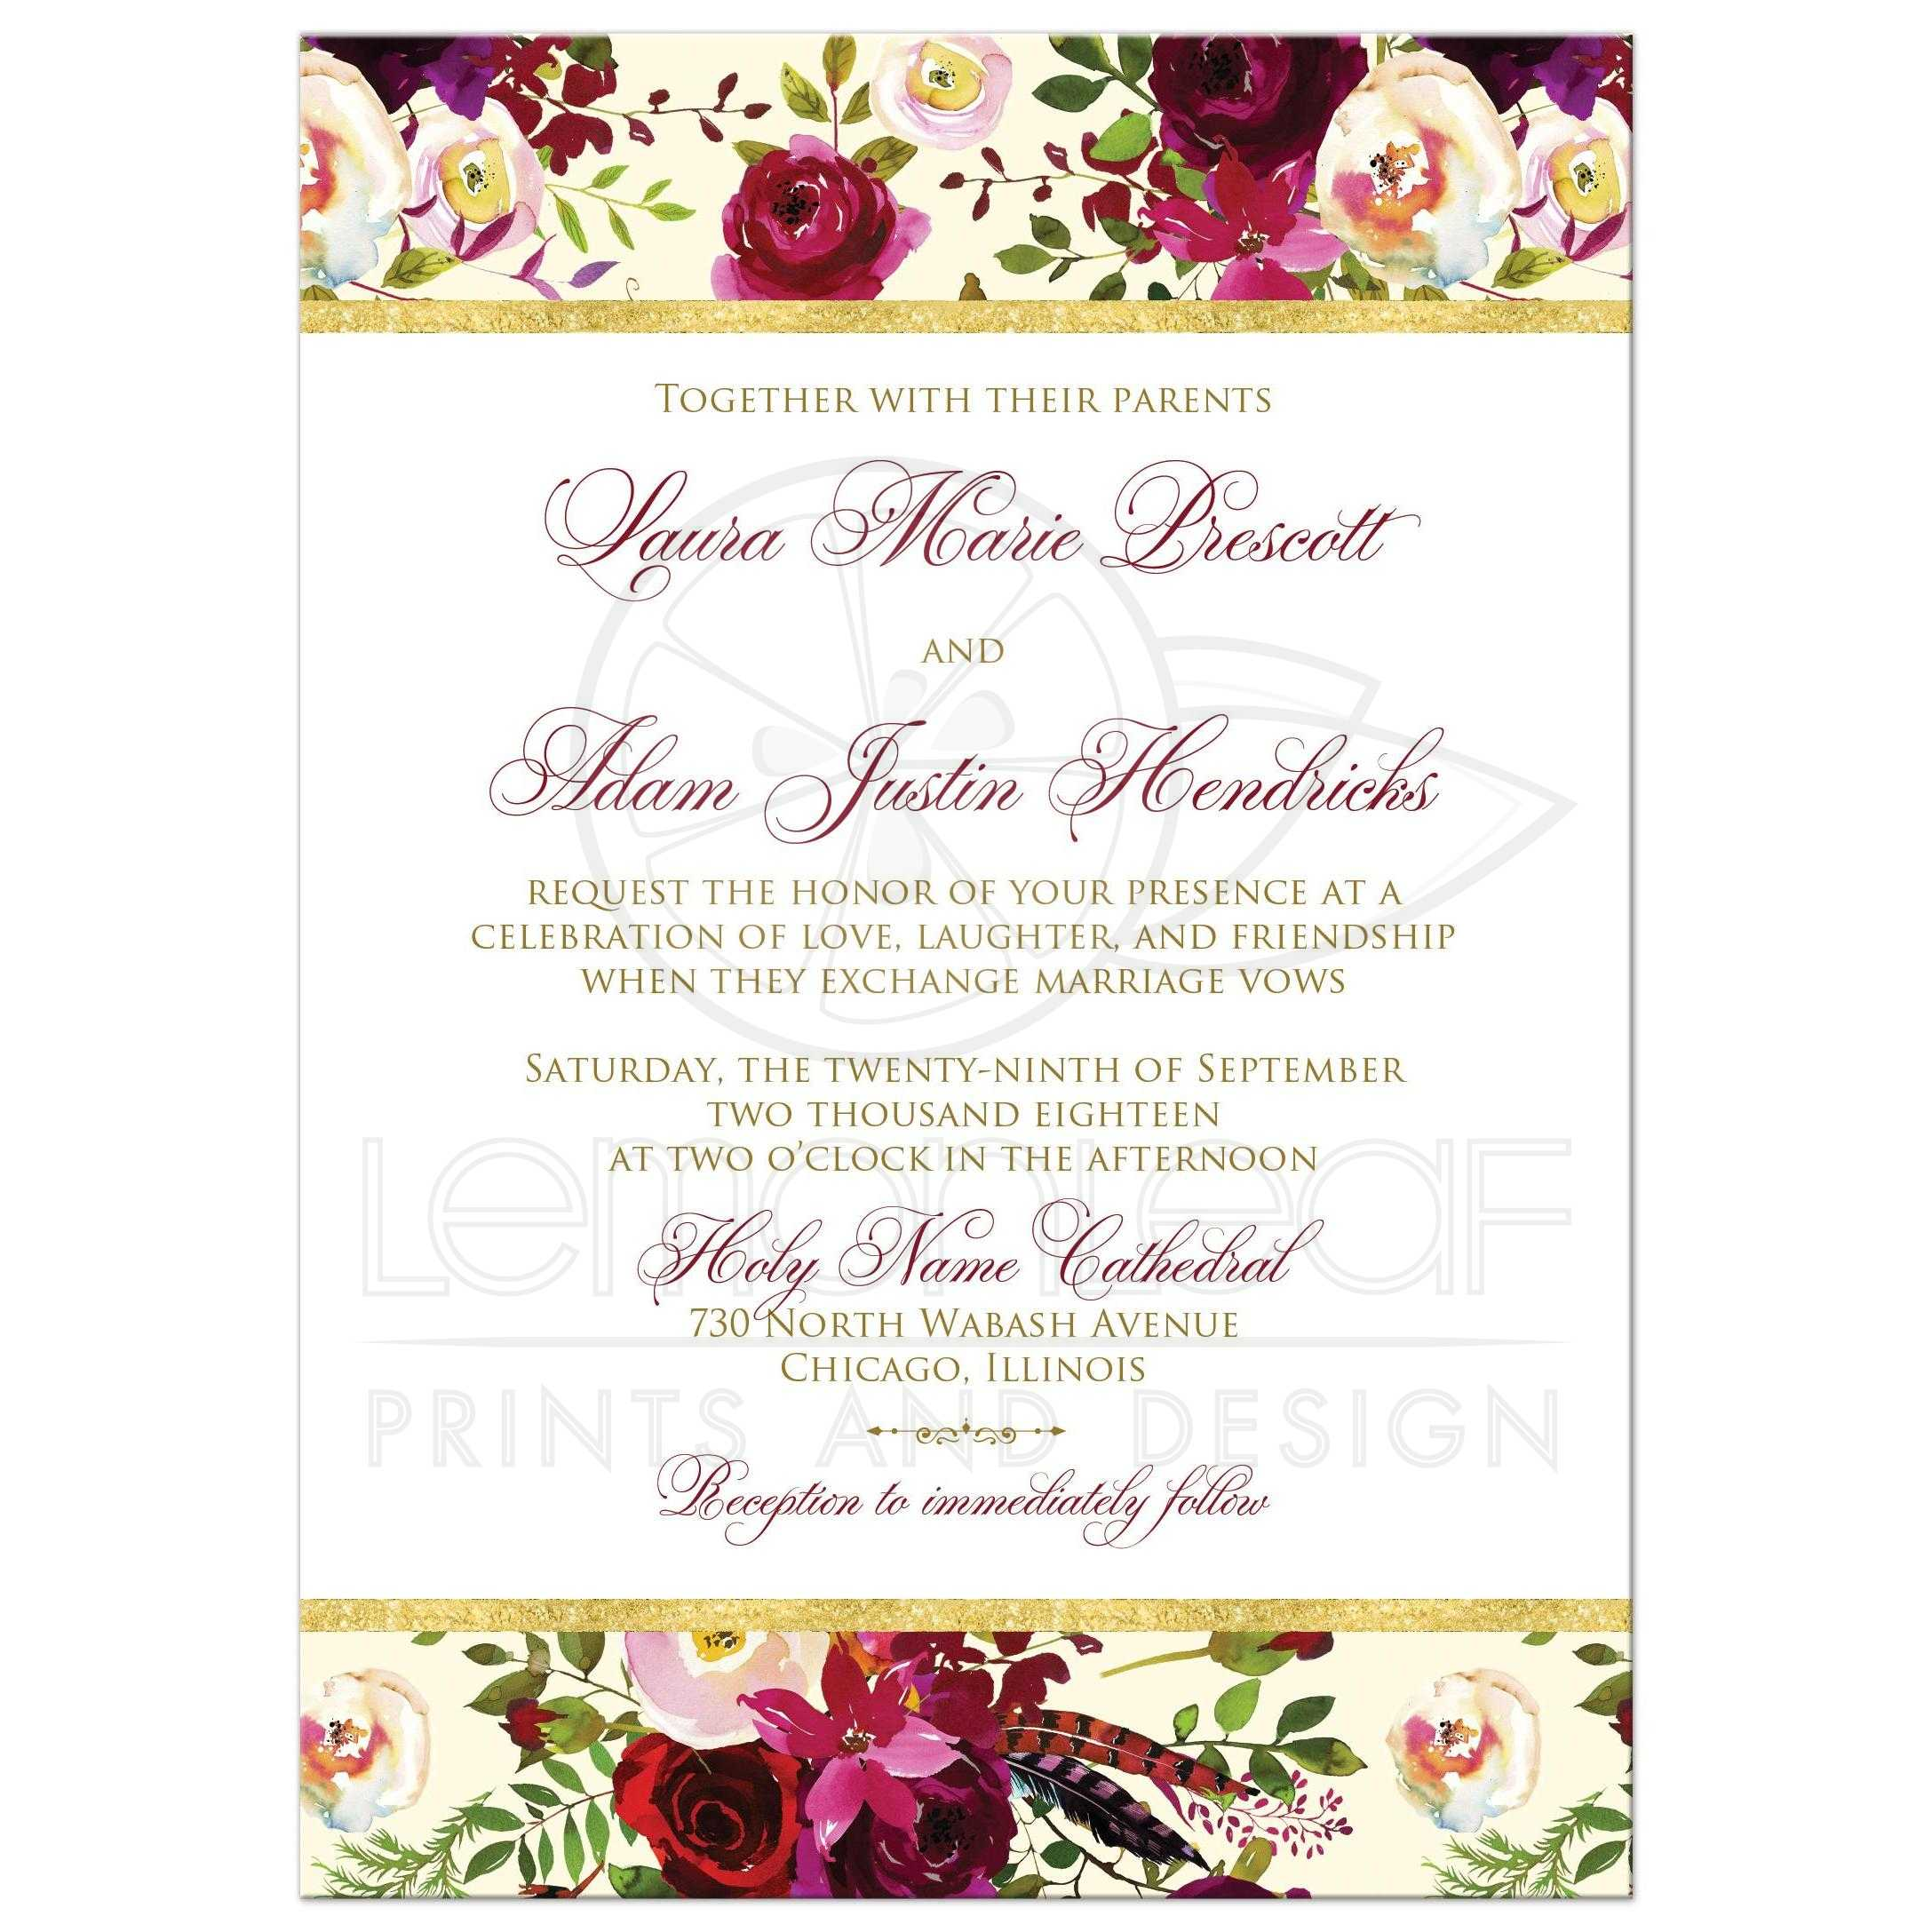 Burgundy Cream White Gold Watercolor Flowers And Feathers Wedding Invitations For Bohemian: Wedding Invitations With Flowers At Websimilar.org